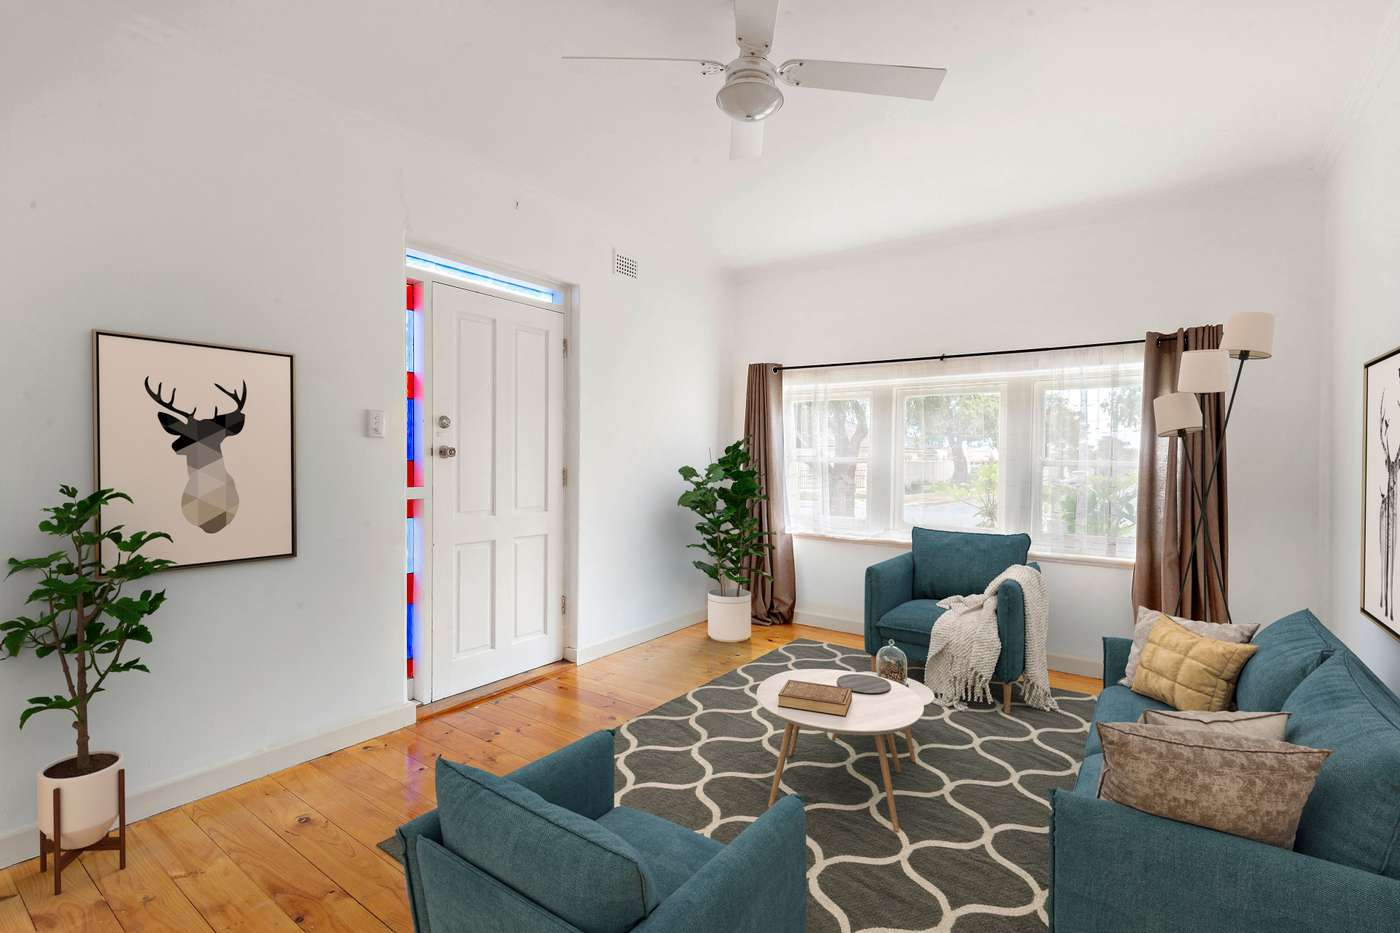 Main view of Homely house listing, 2/12 English Avenue, Clovelly Park, SA 5042